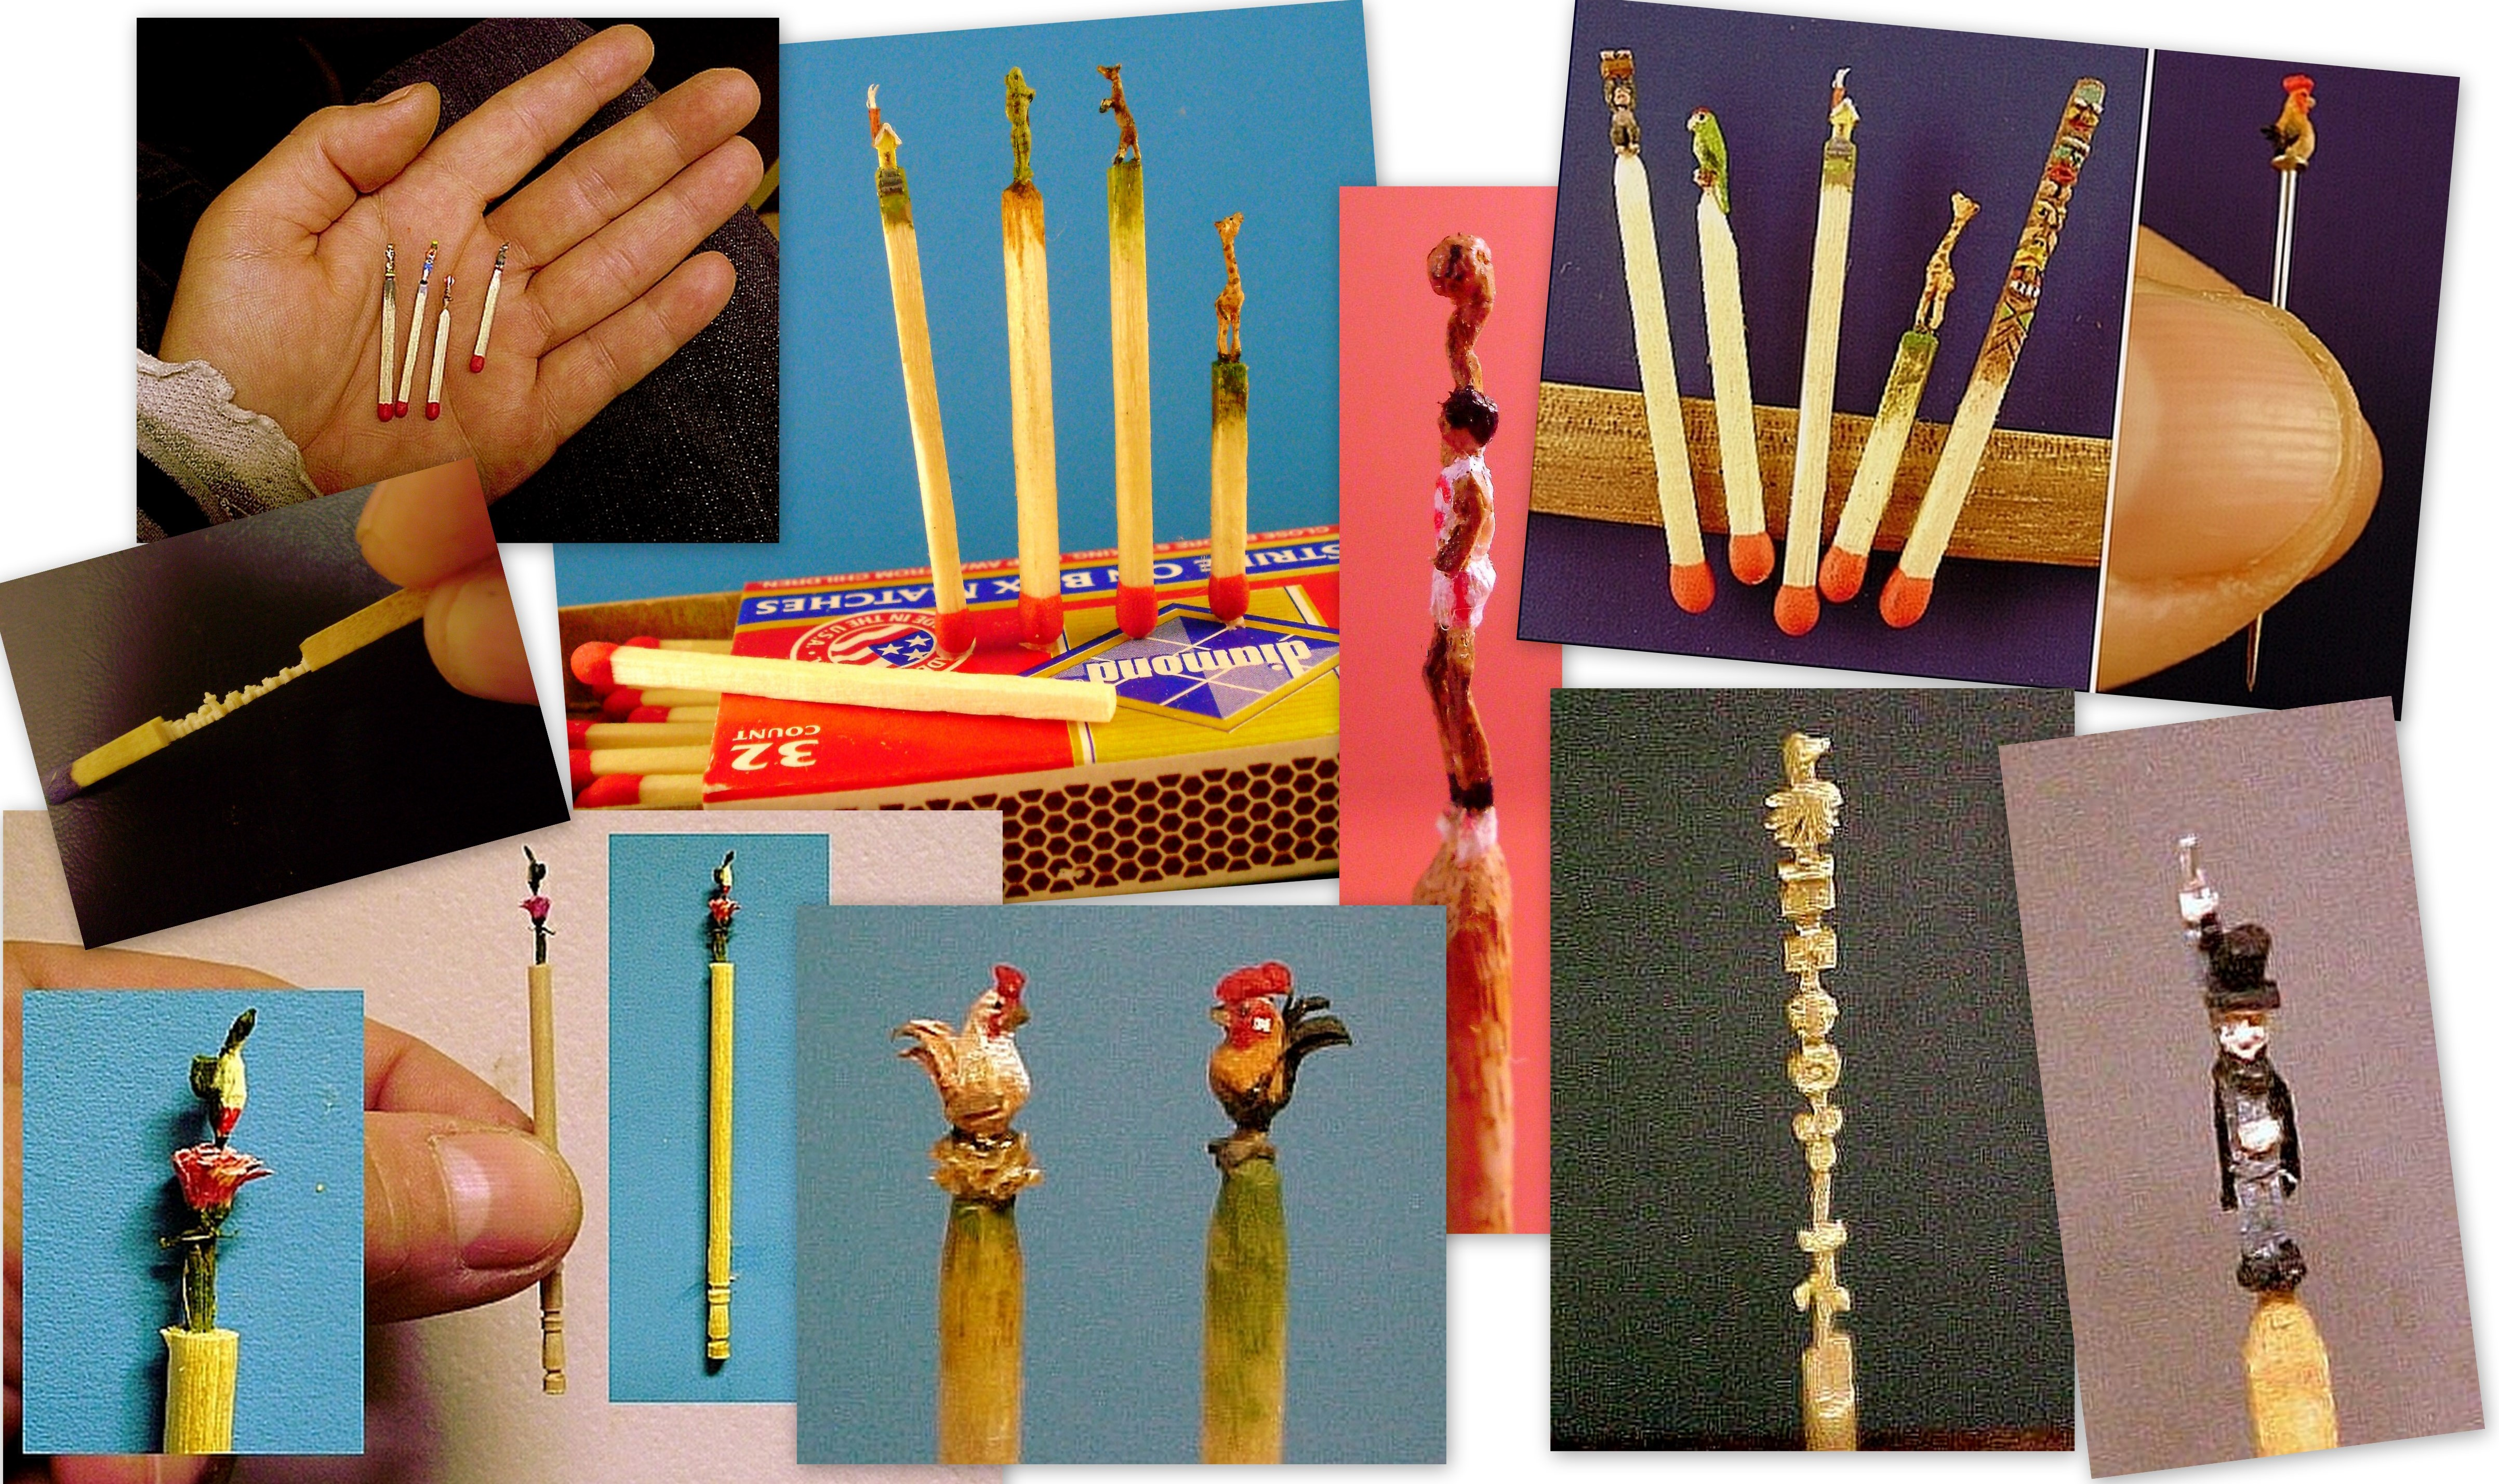 Very intricate hand carved hand painted toothpicks and matchsticks